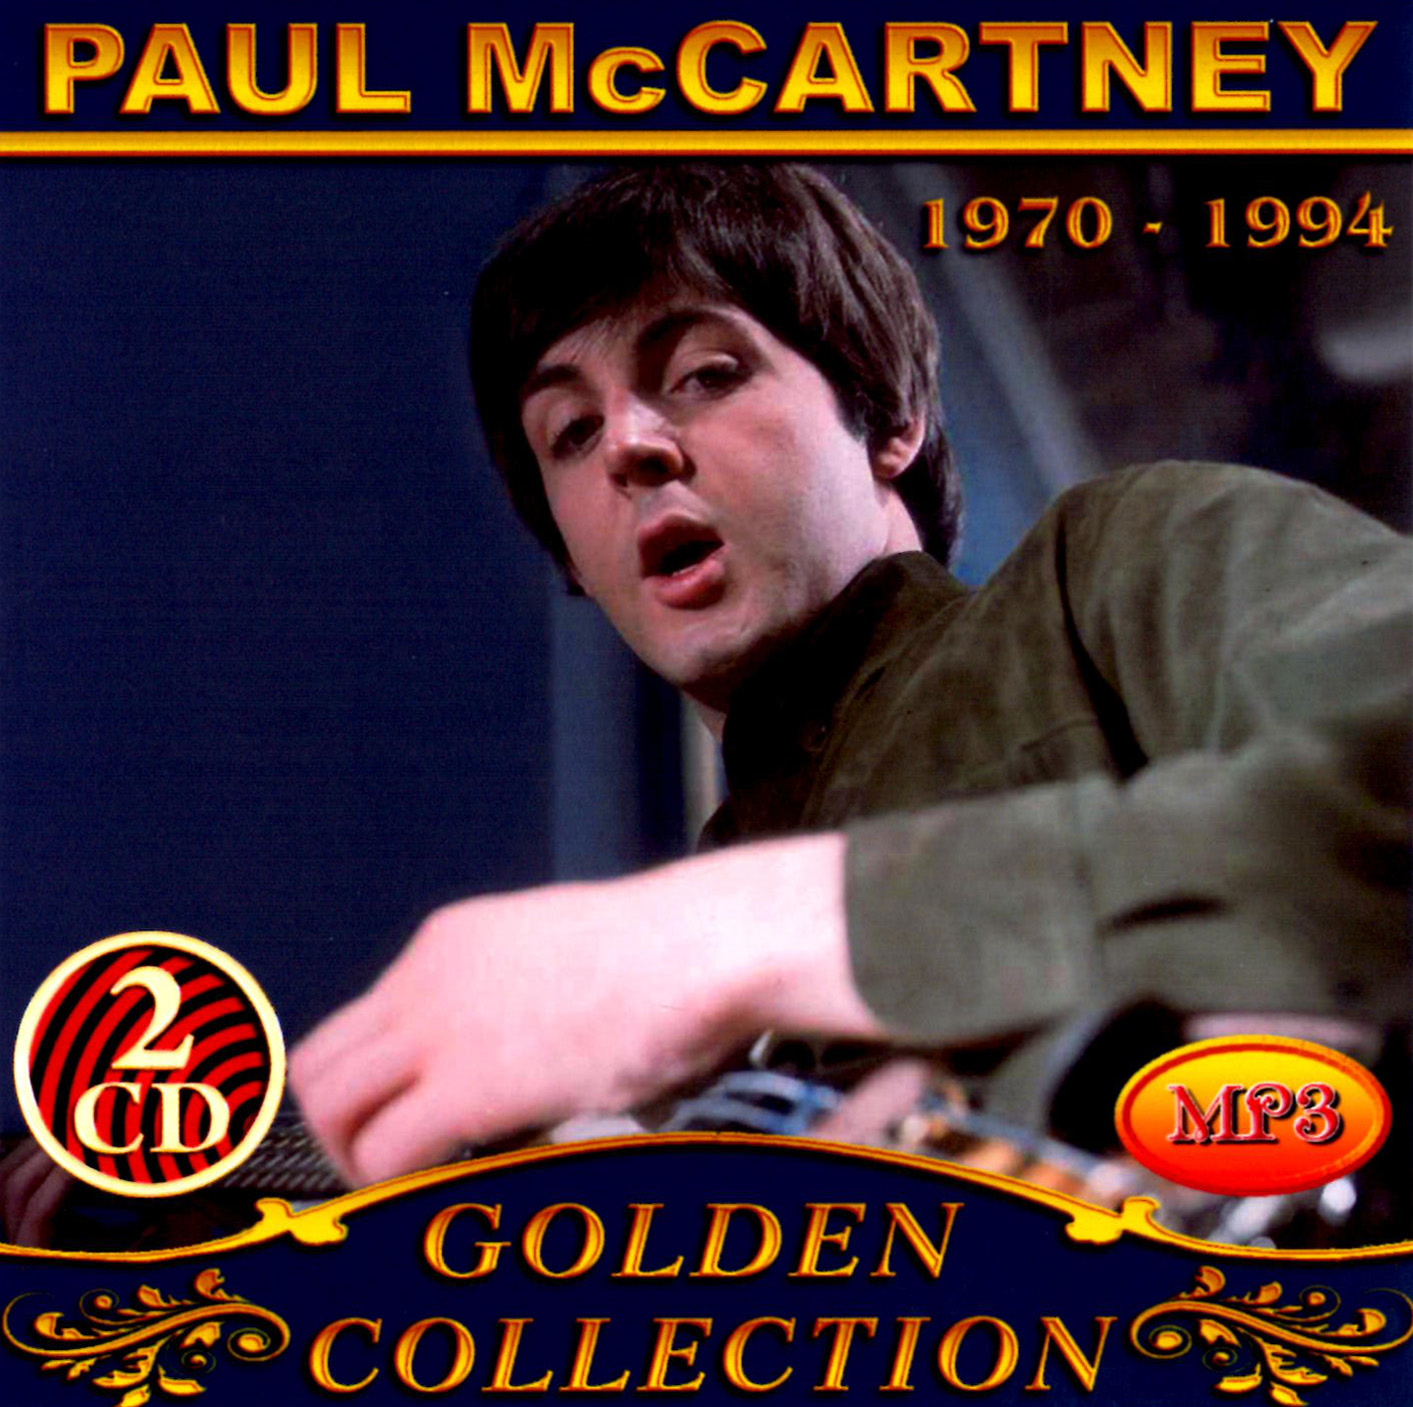 Paul McCartney 1ч 2cd [mp3]